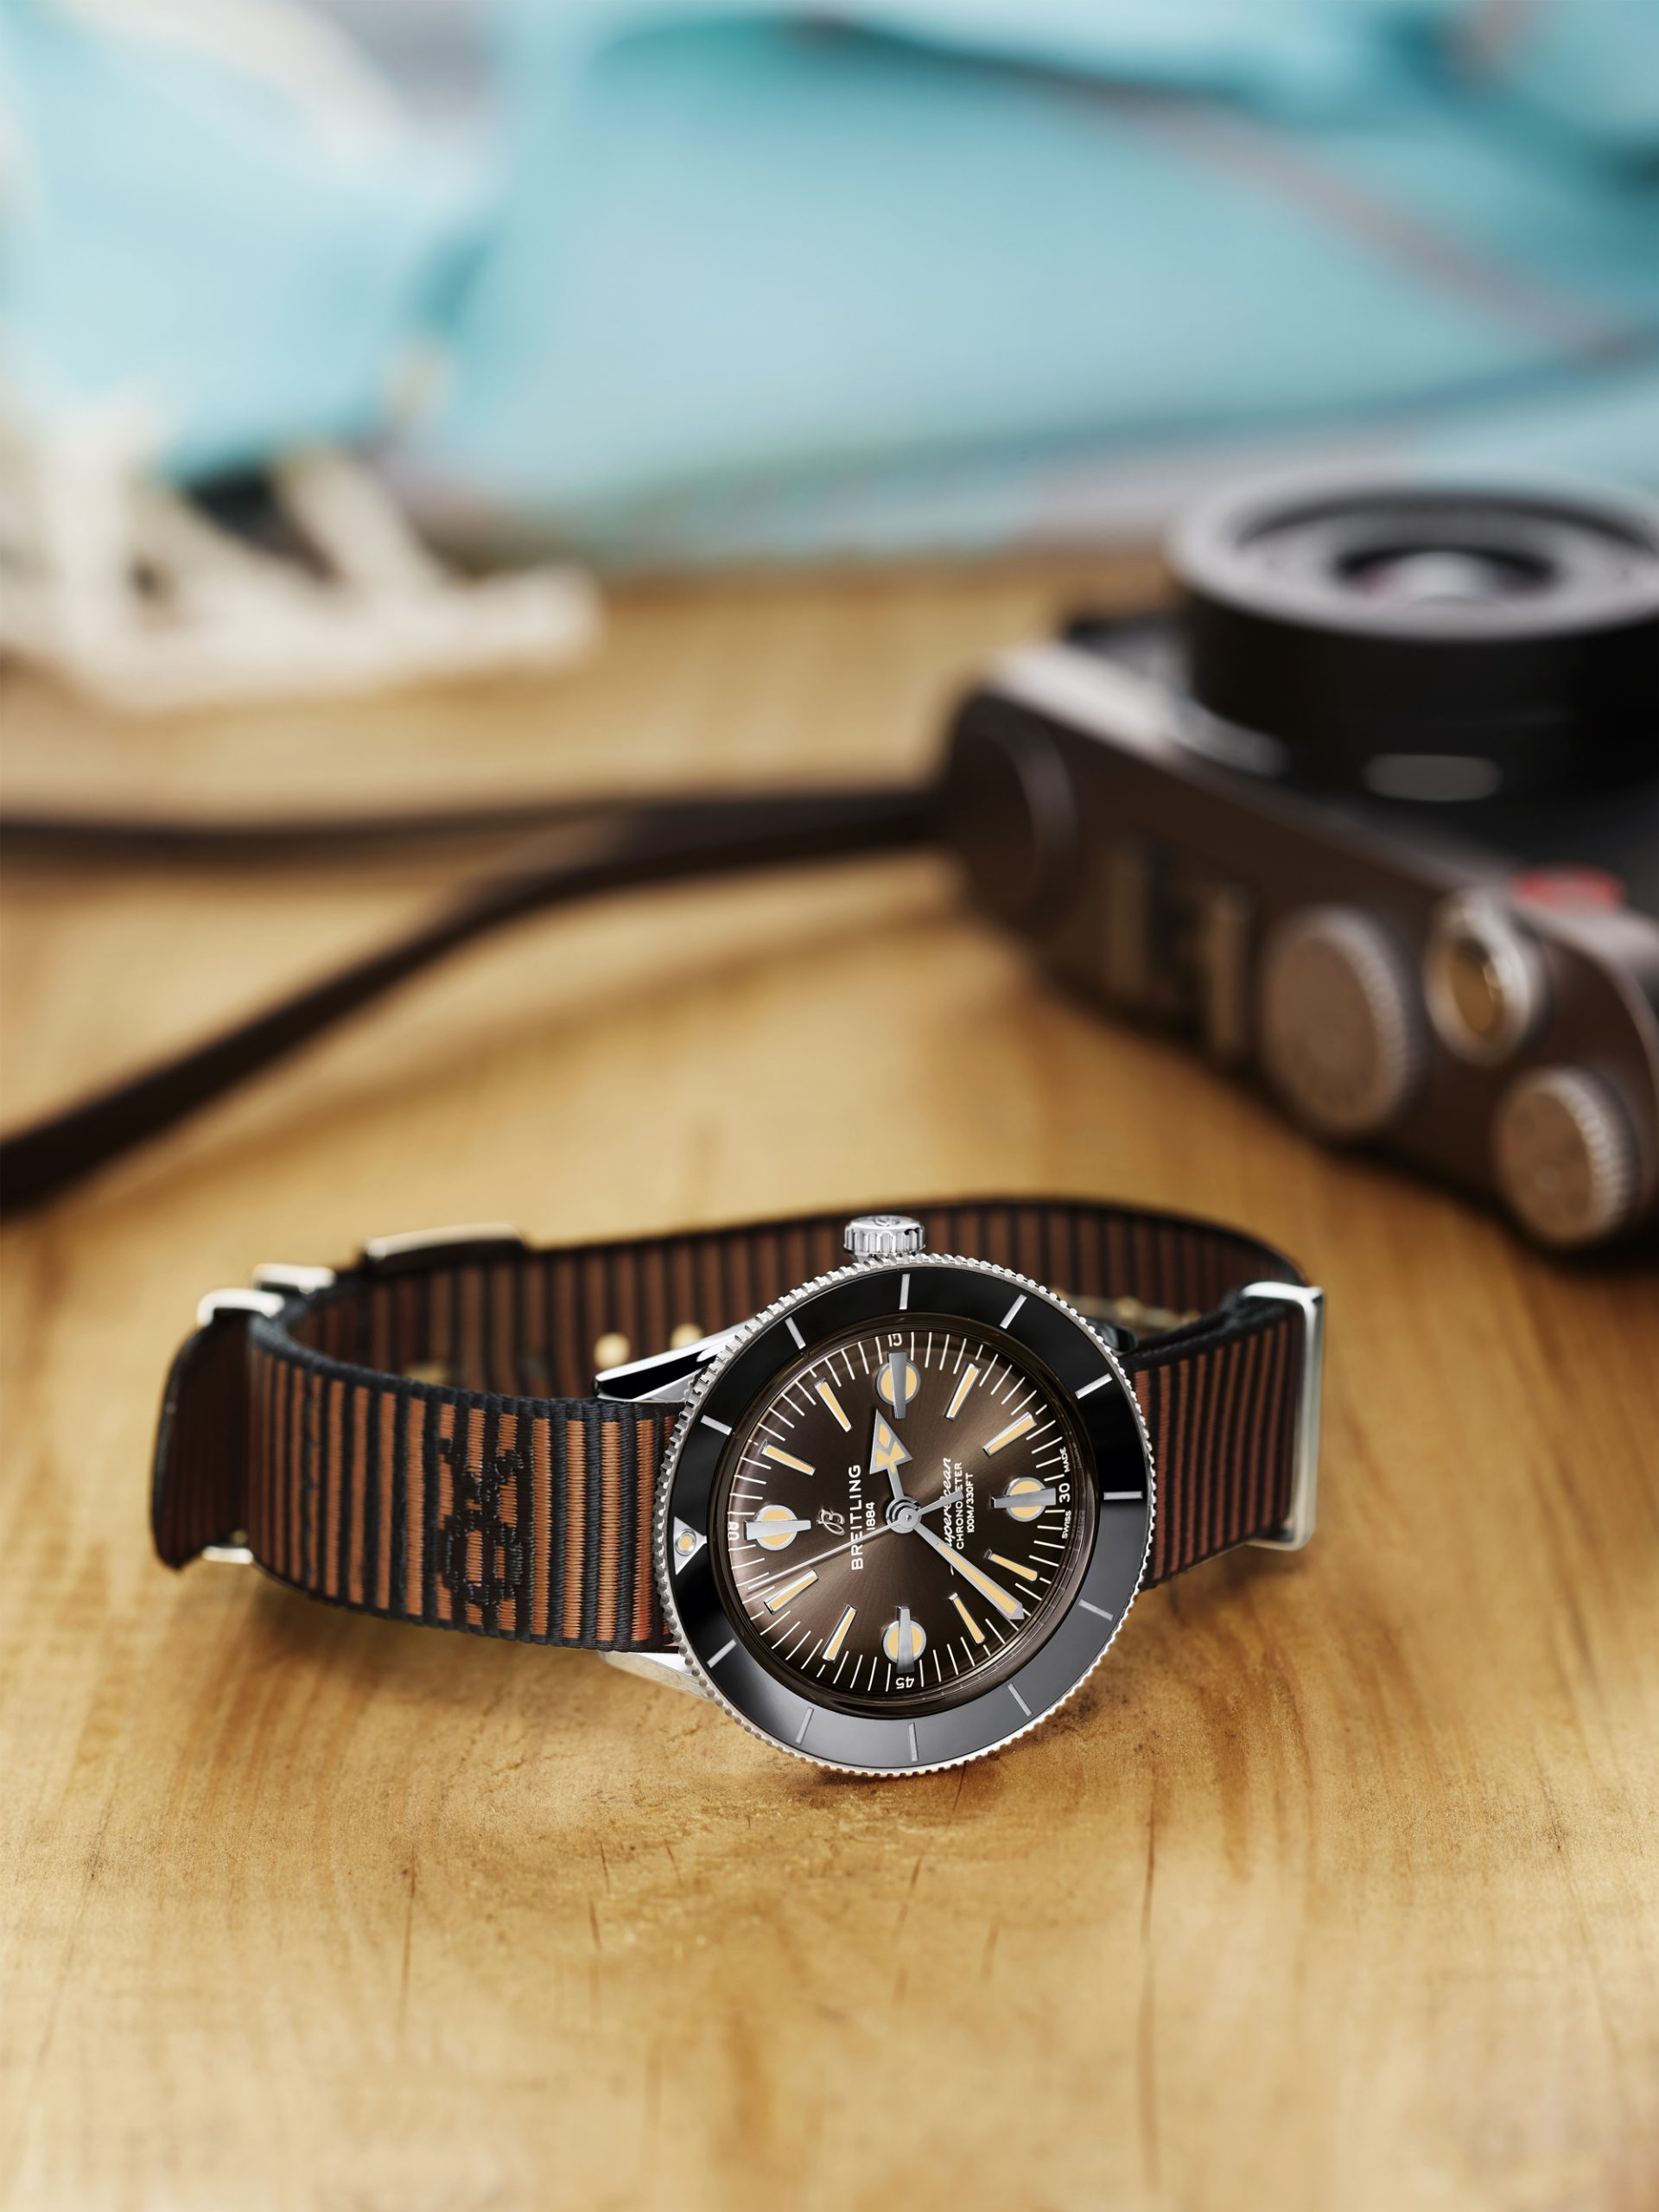 Breitling Launches the Superocean Heritage '57 Outerknown